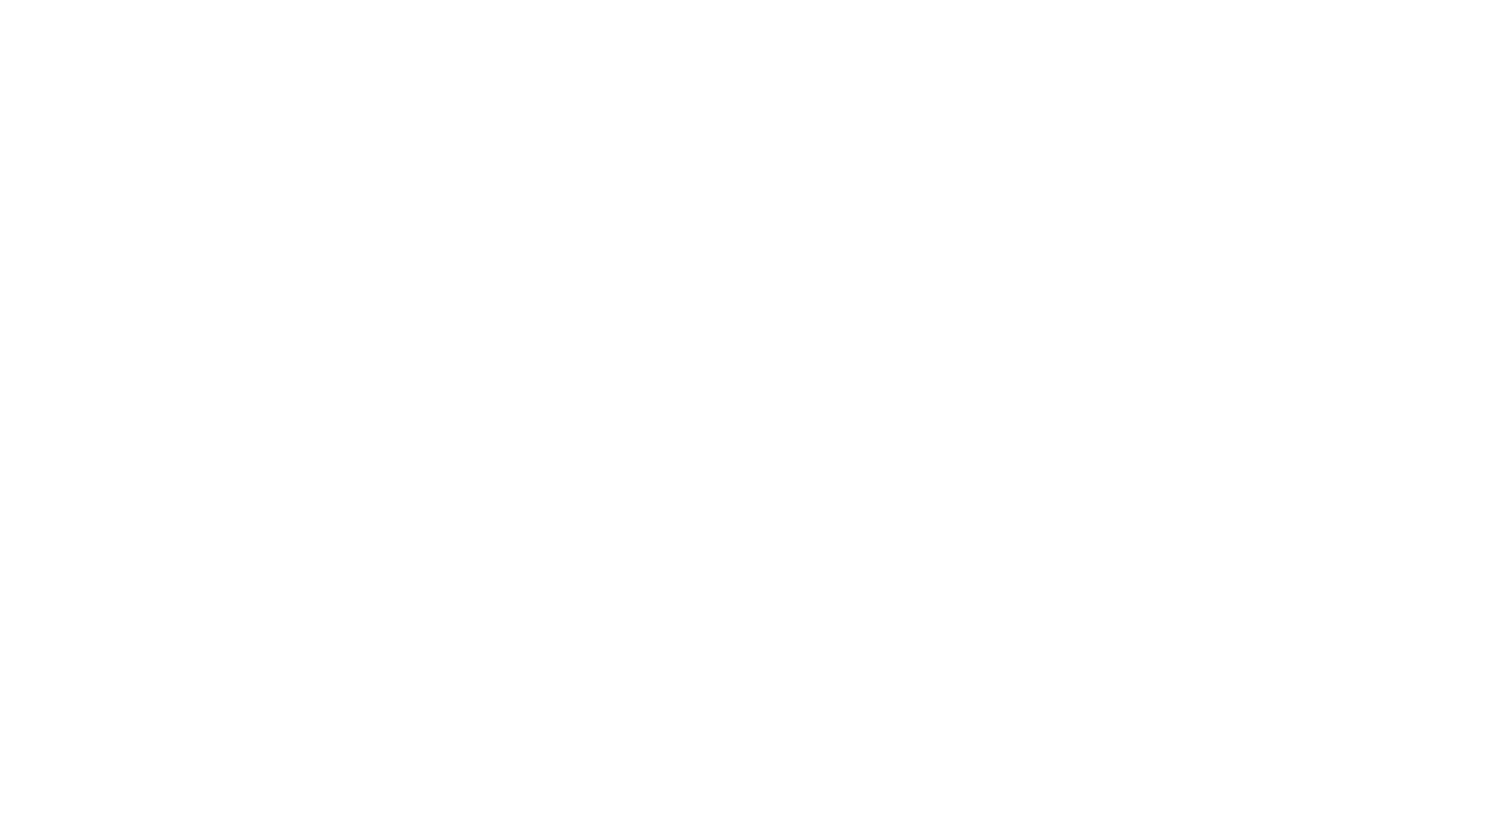 Manchester Cake Co.